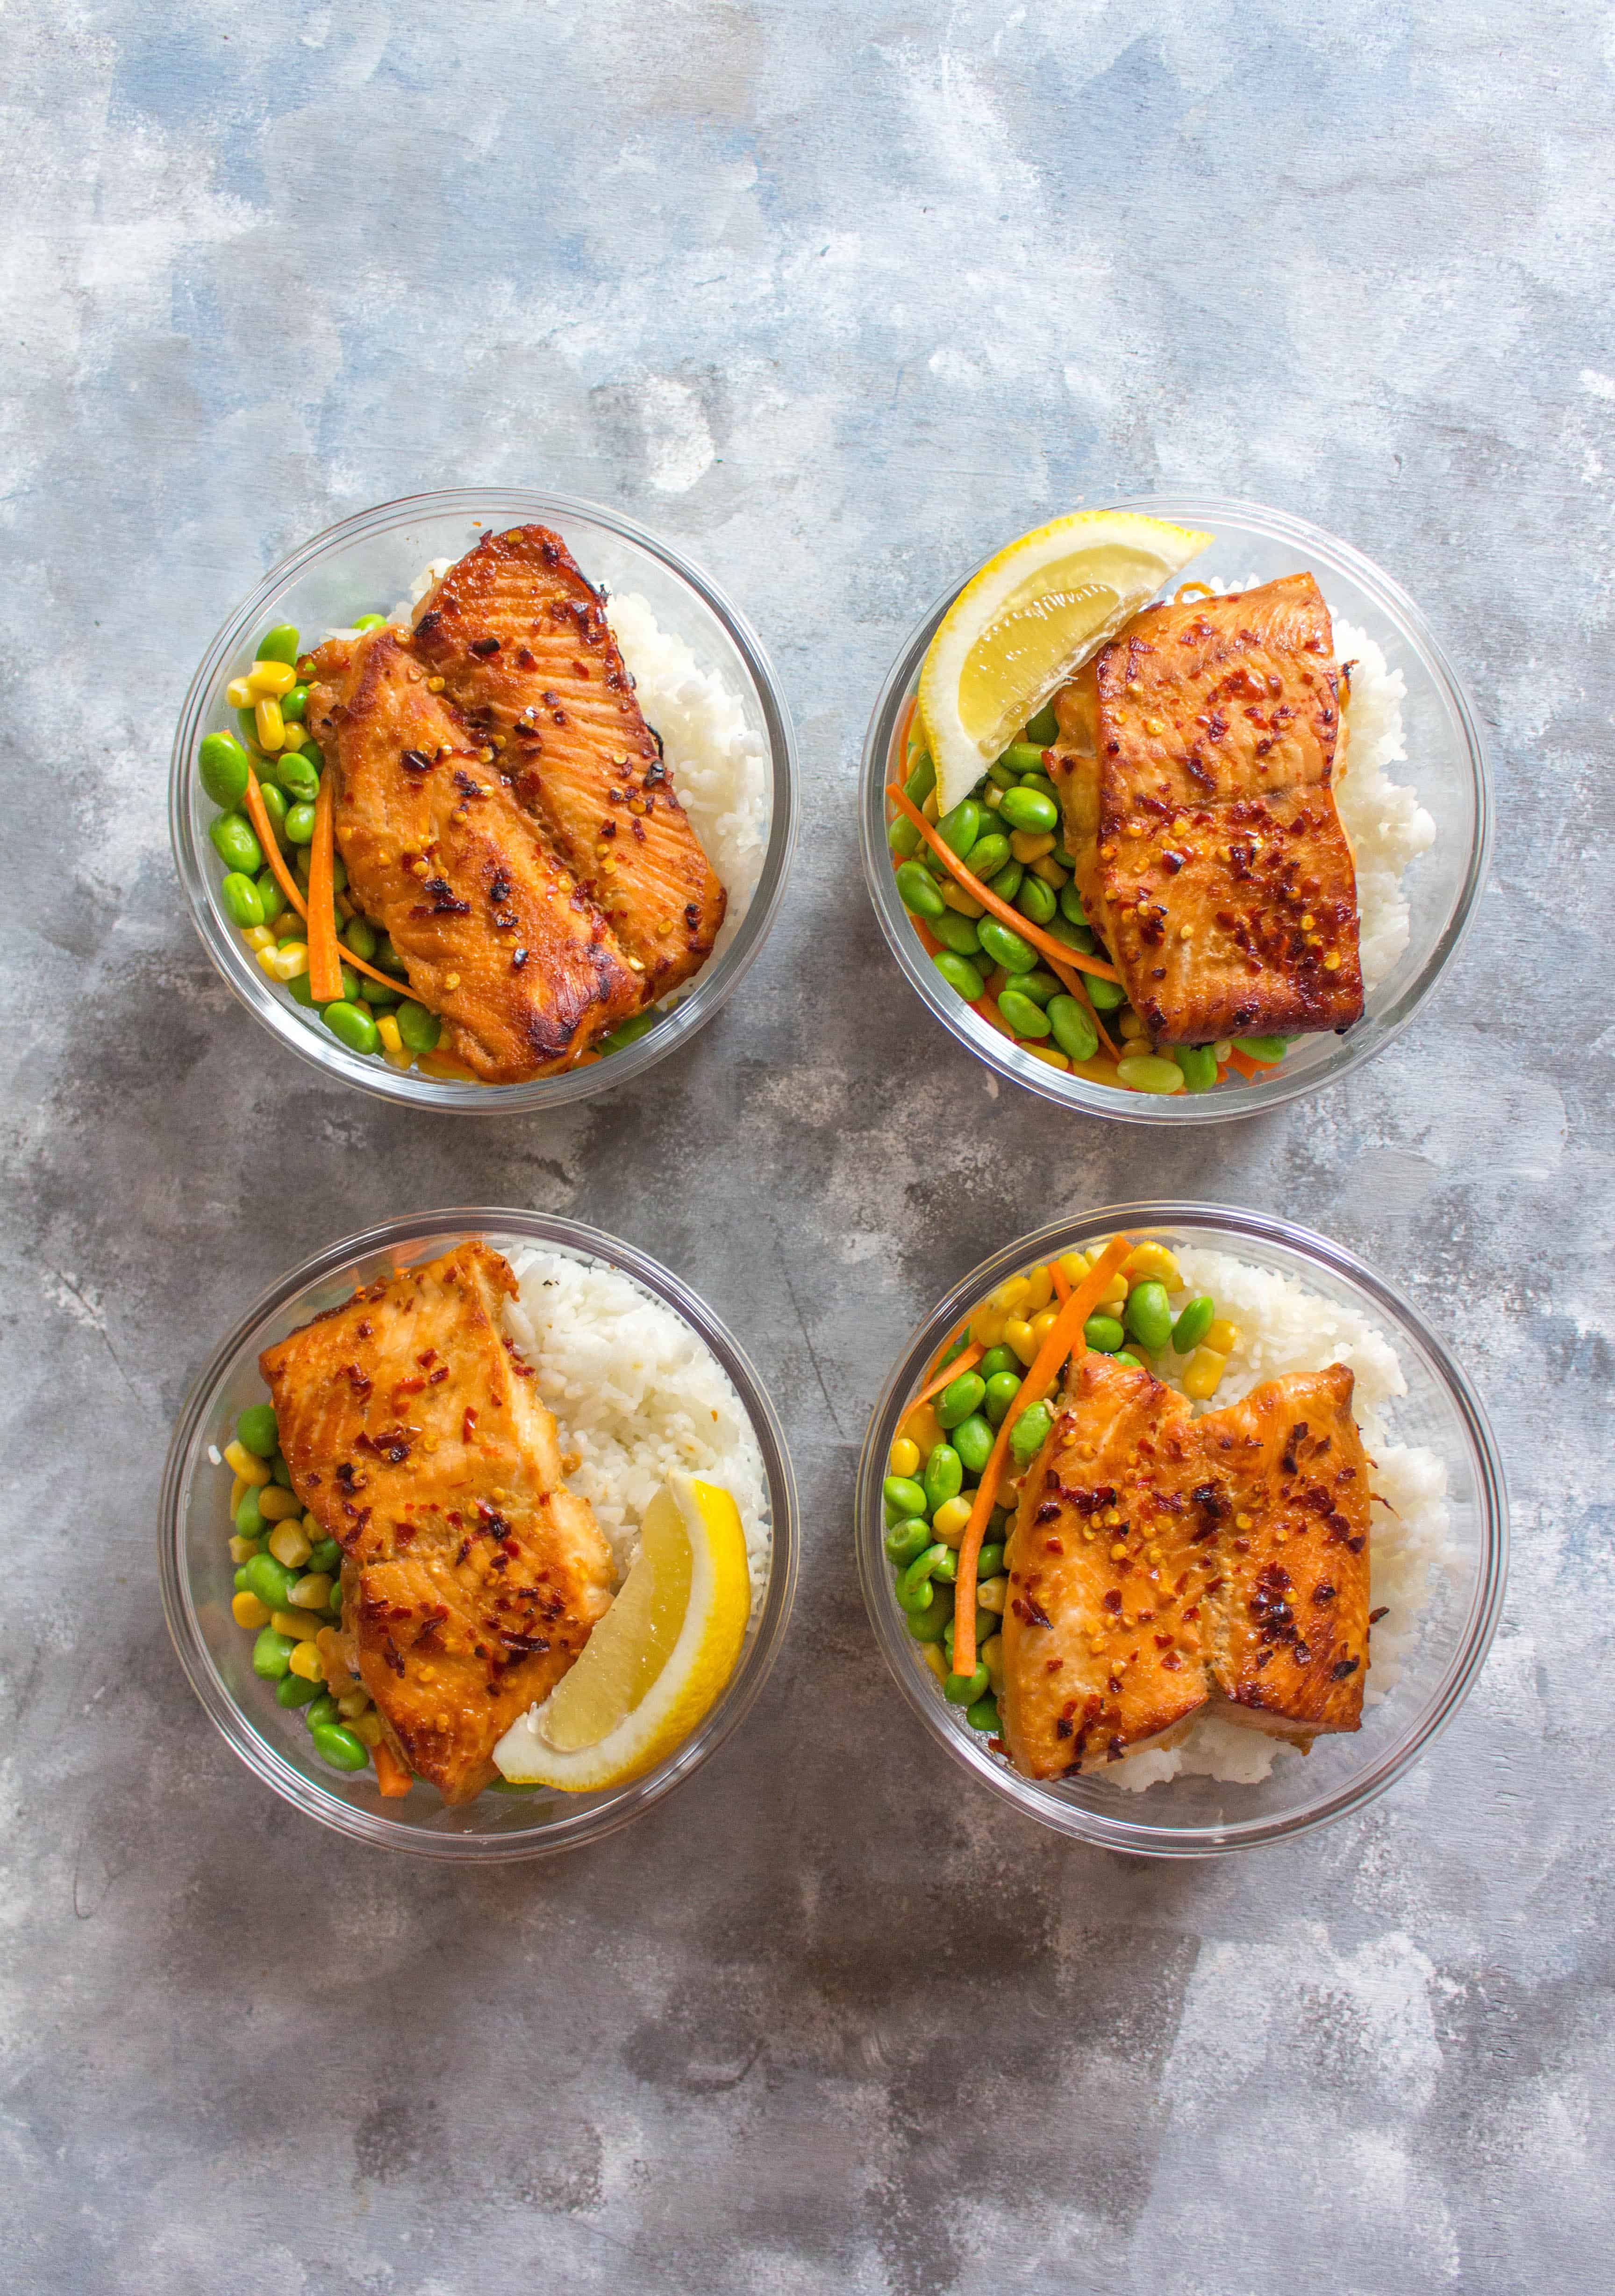 This quick and easy Sweet Chili Salmon Meal Prep is super delicious, flavourful, and my new go-to meal! It makes for the perfect meal prep and a tasty weeknight dinner!